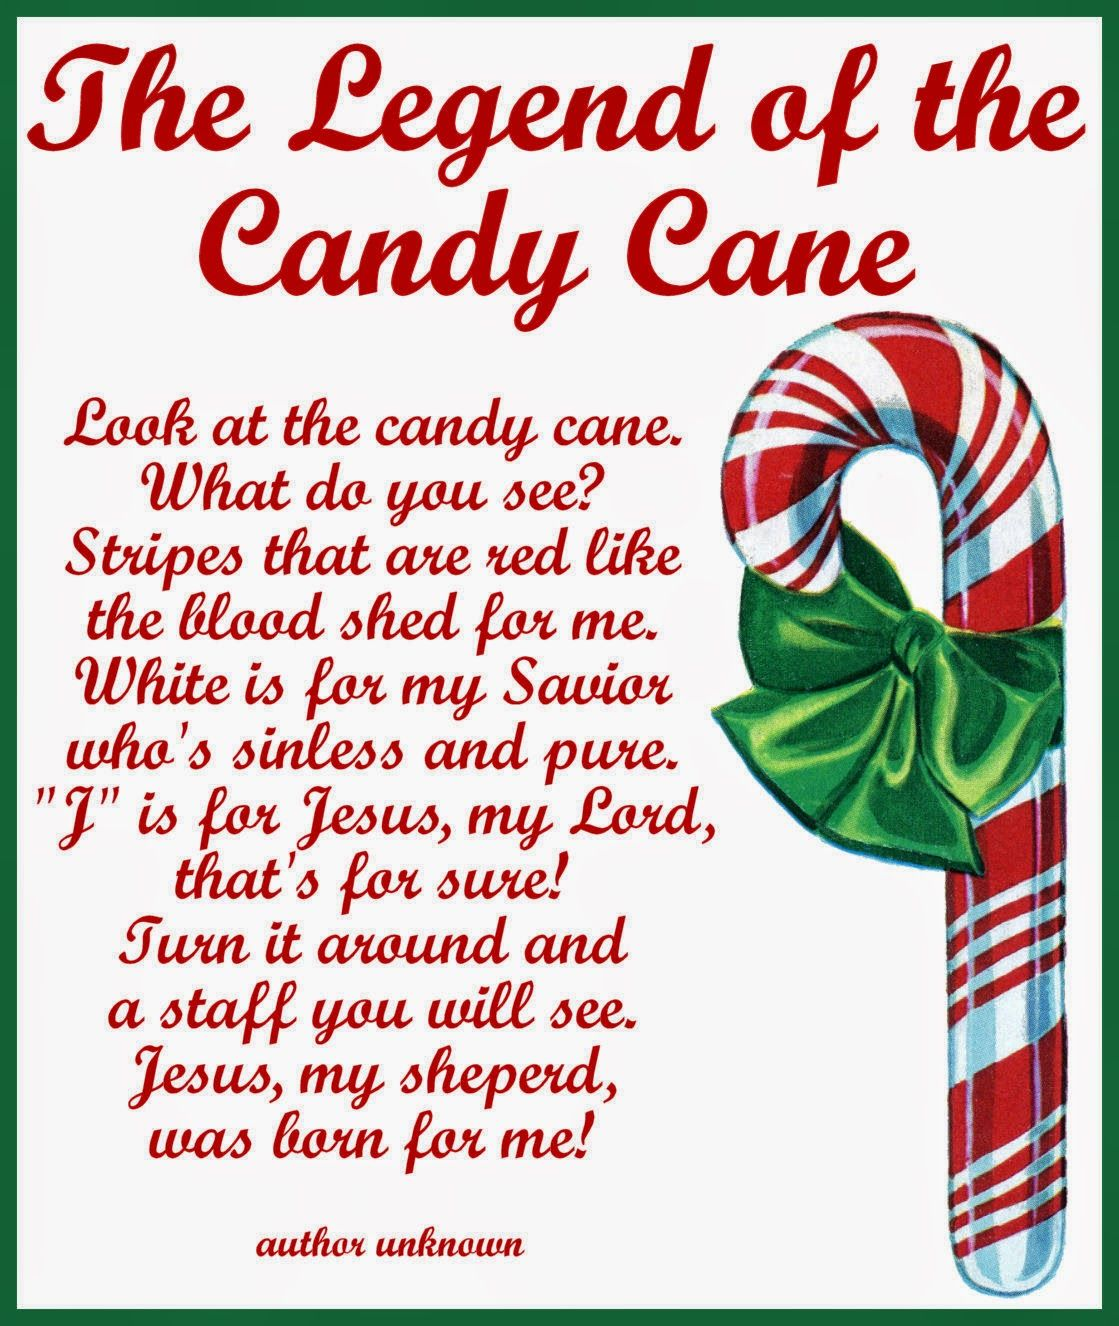 photo regarding Candy Cane Story Printable known as Craftymumz Creations: Sweet Cane Legend Card Printable